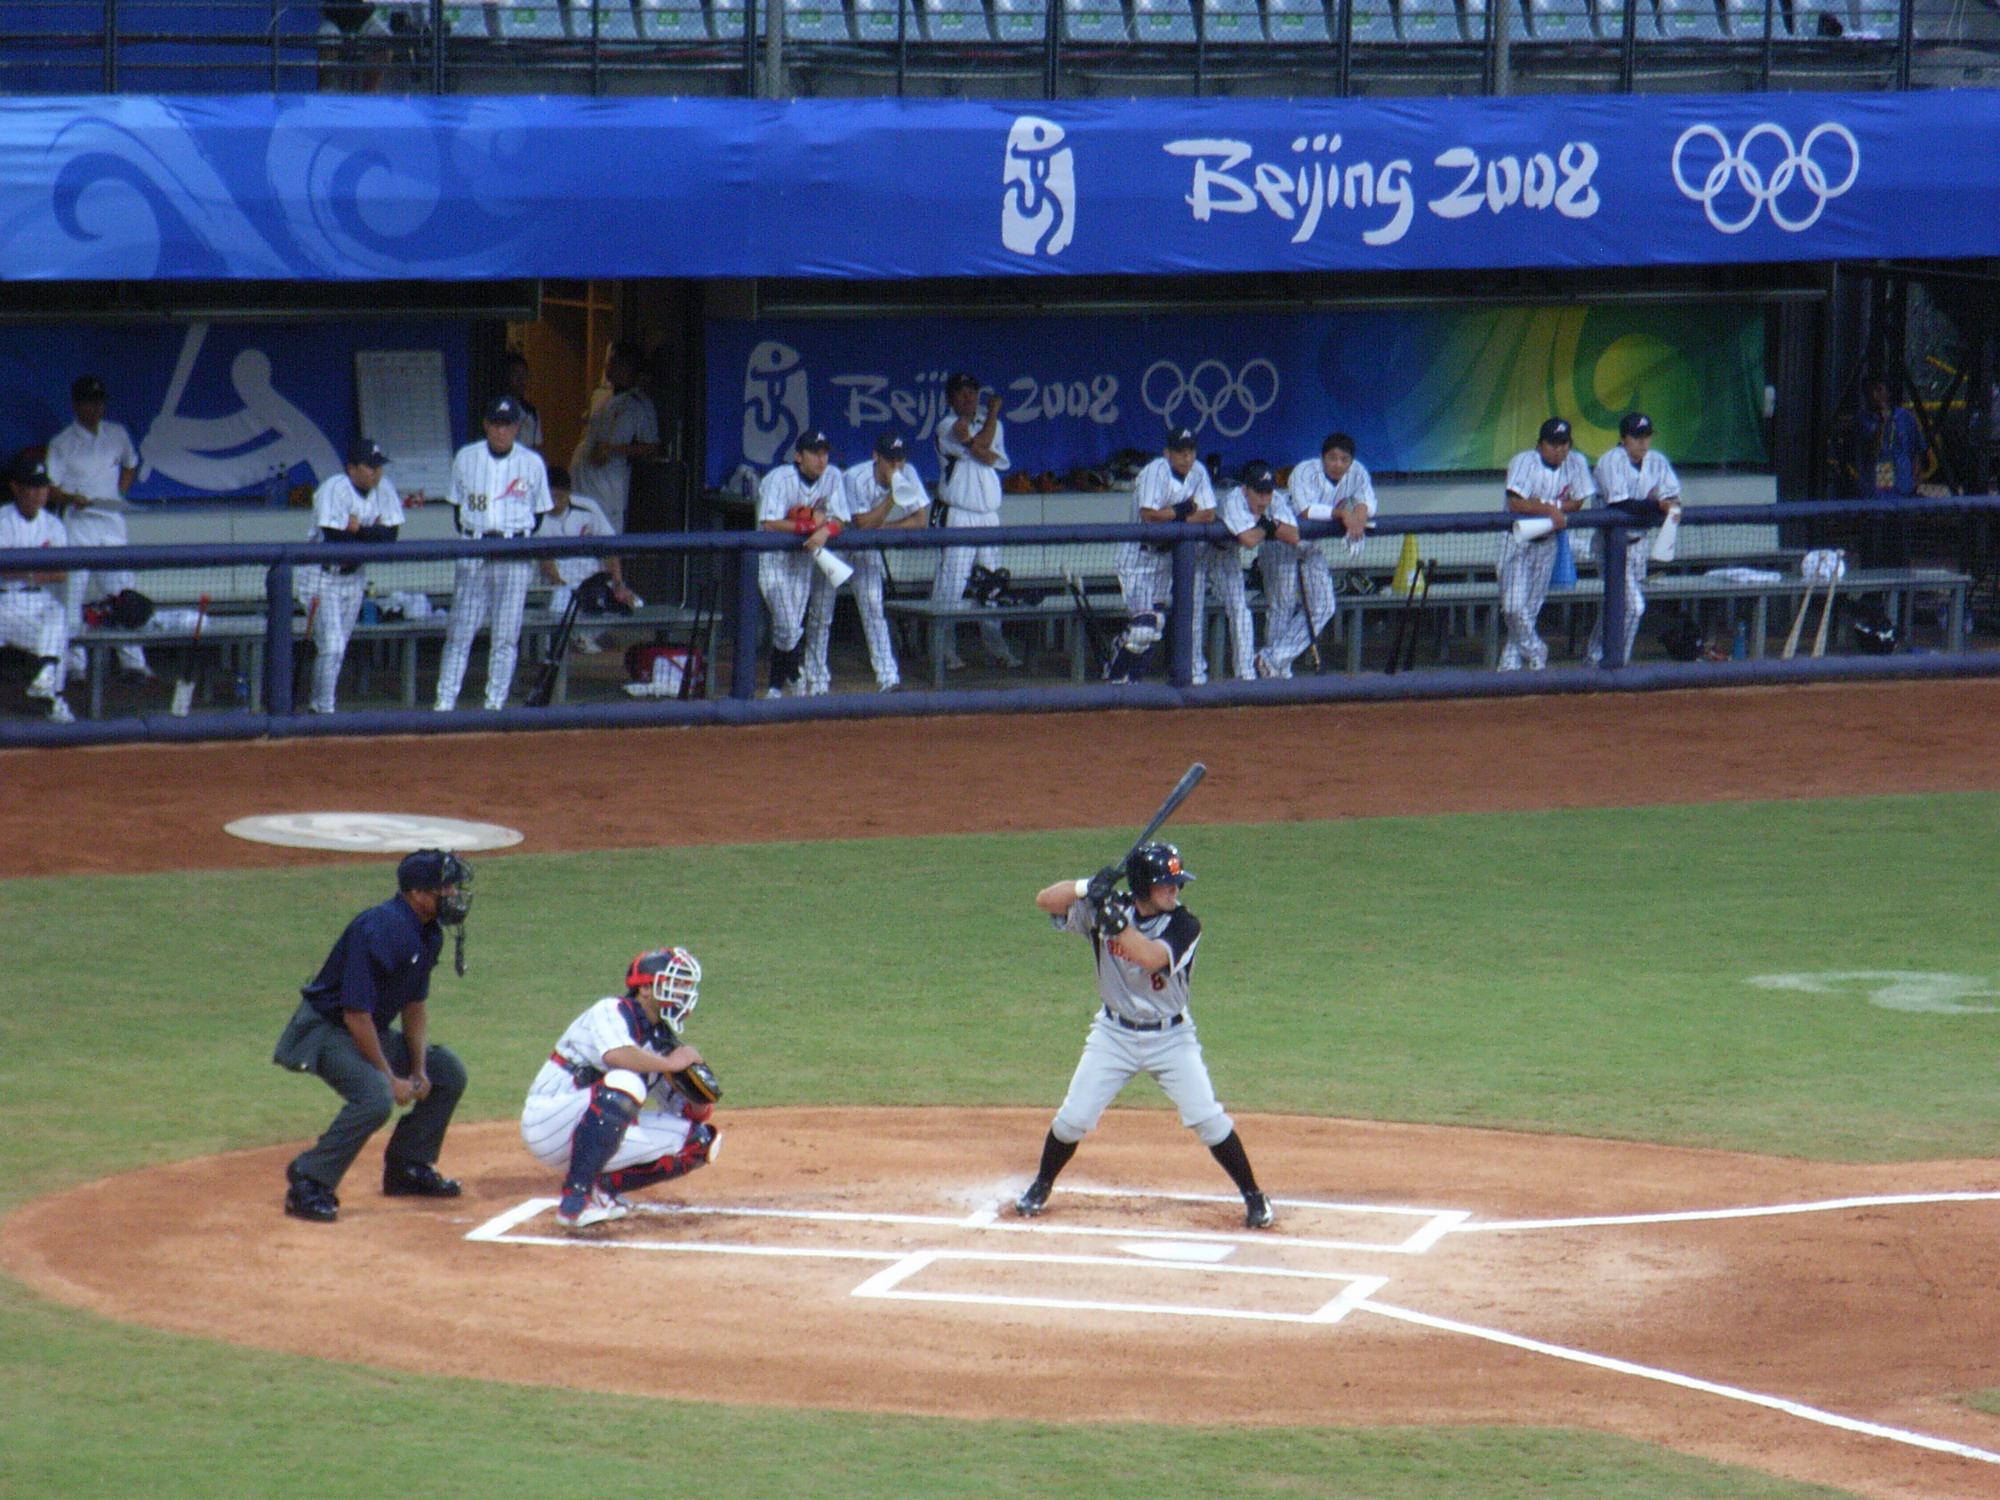 baseball hd image